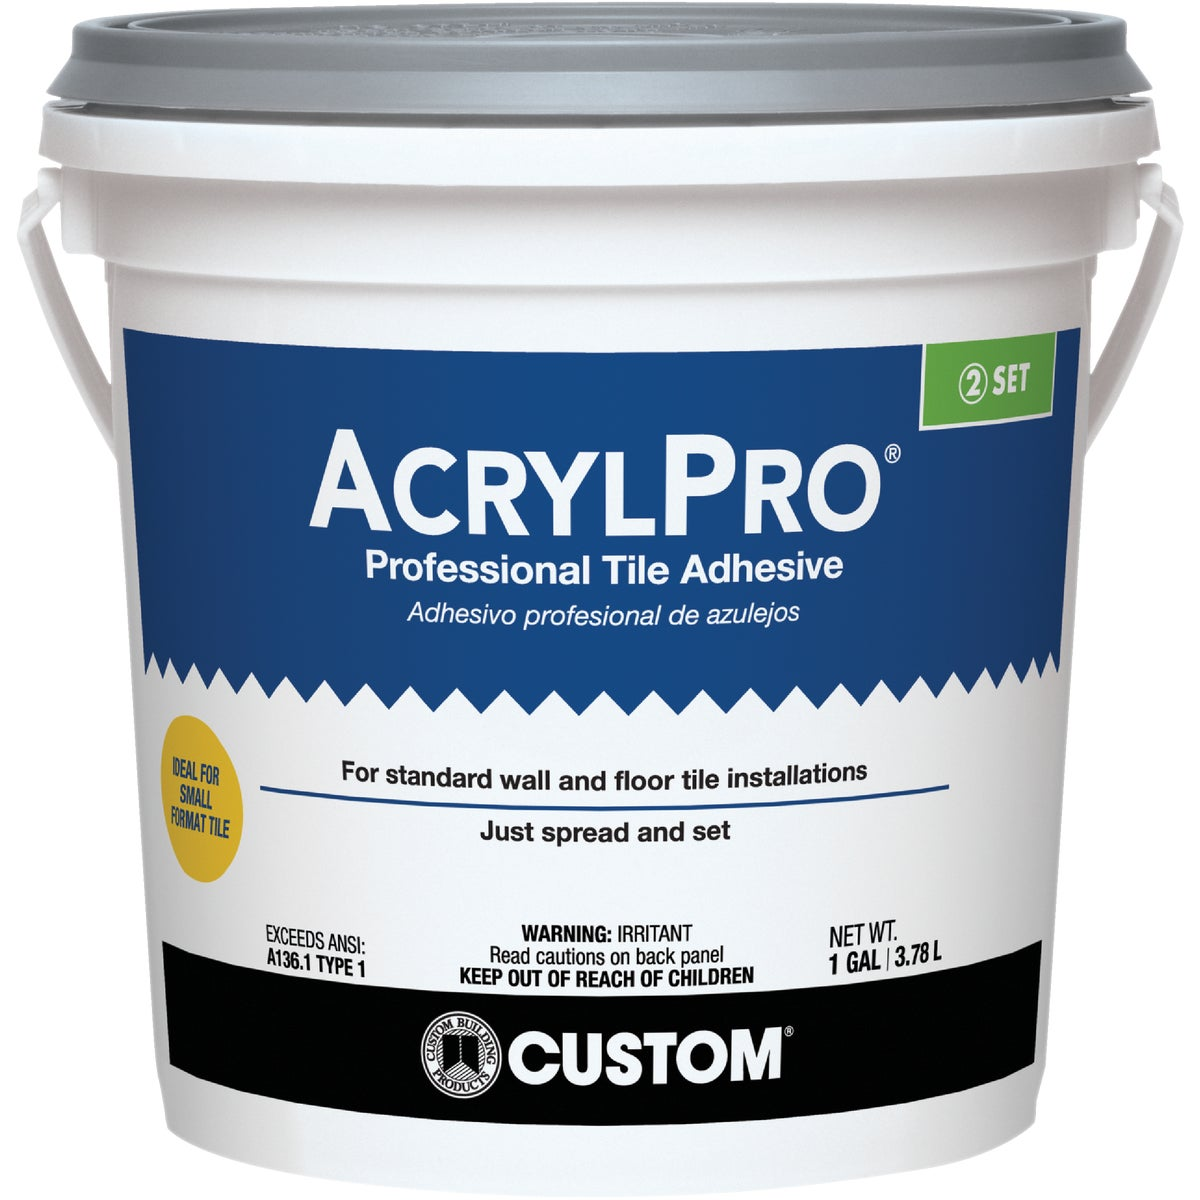 GAL PL CRMC TILE MASTIC - ARL40001-2 by Custom Building Prod